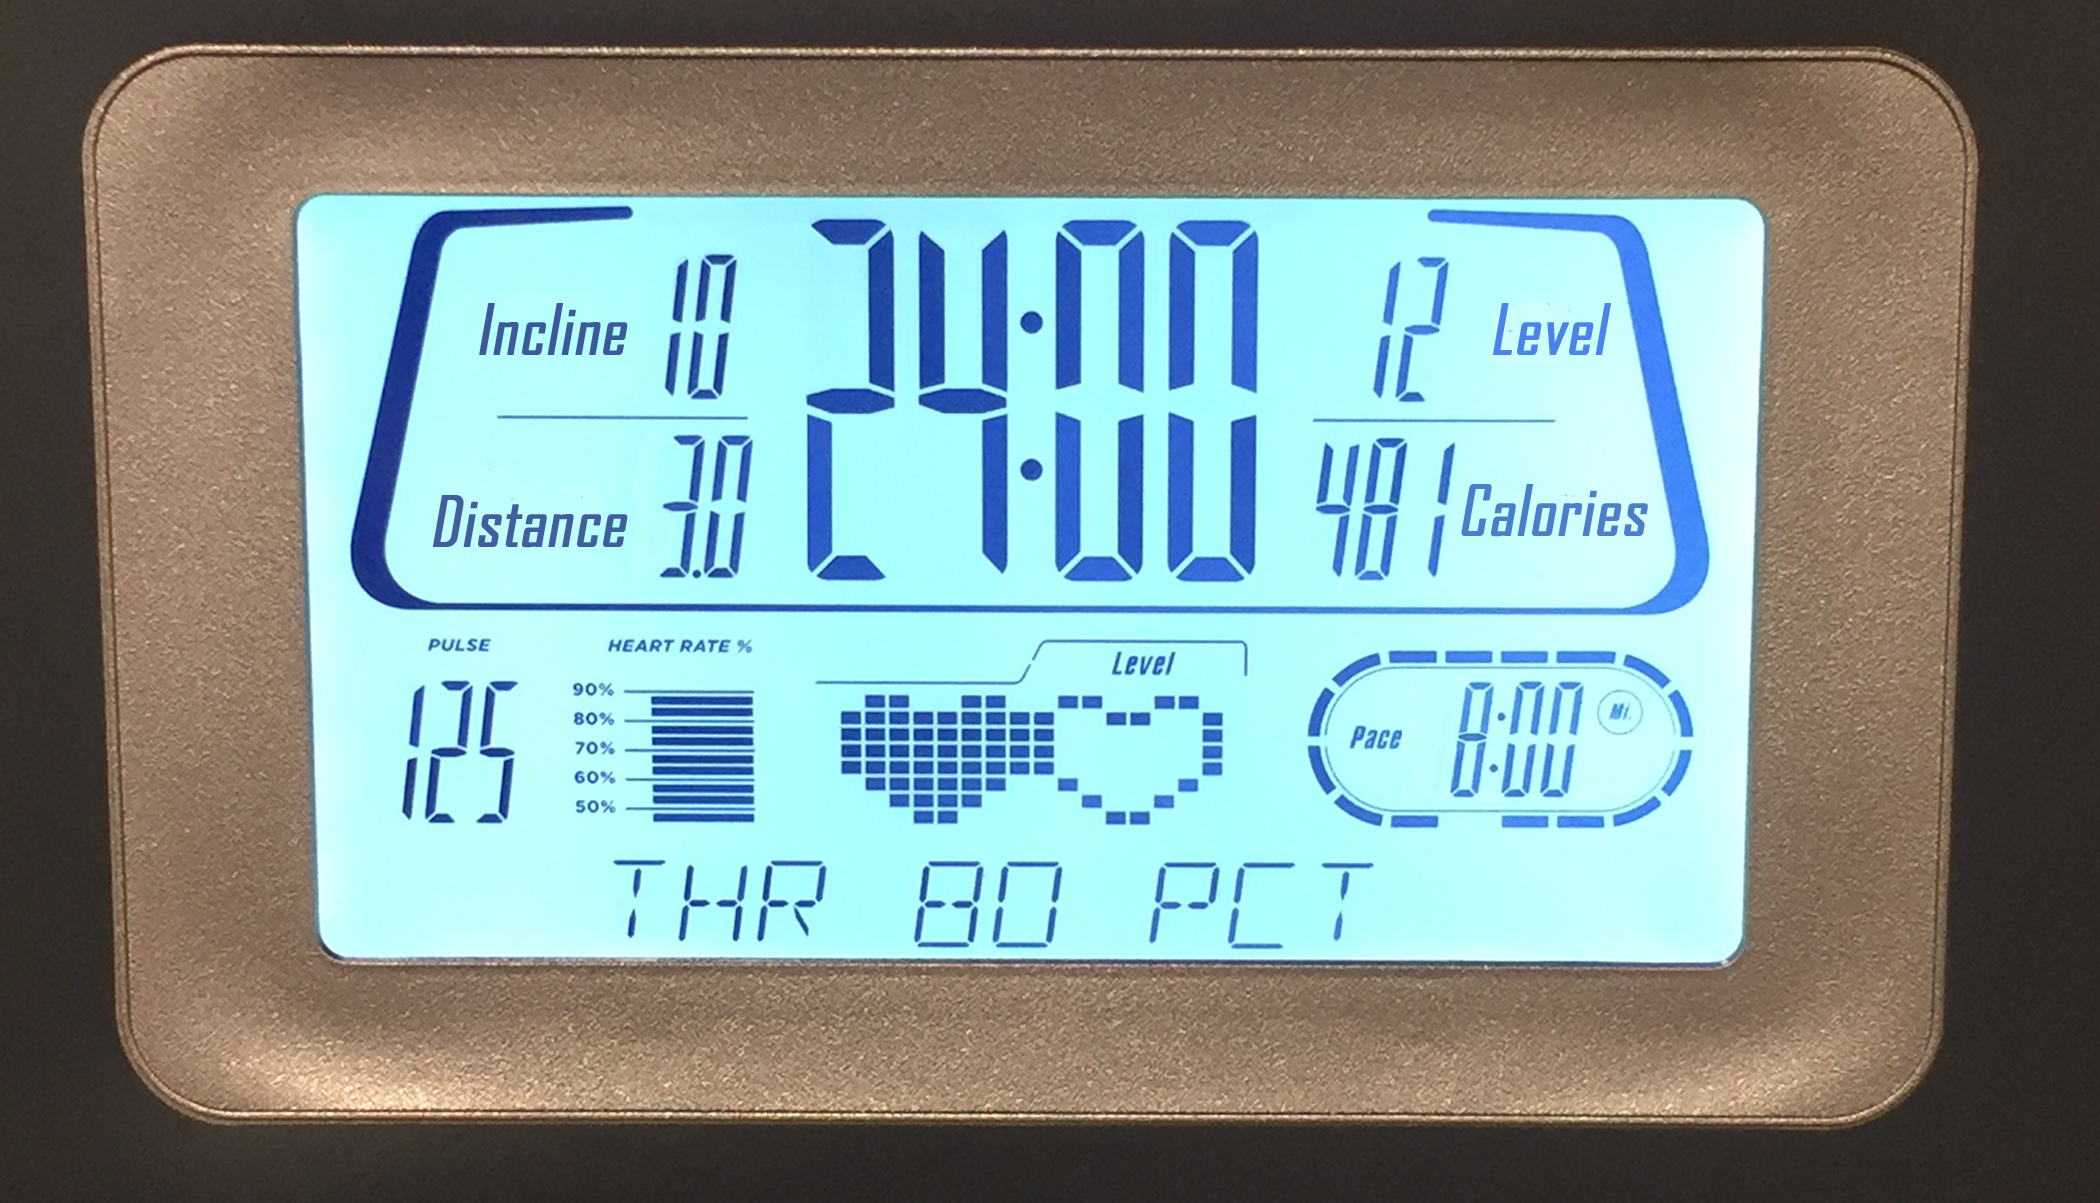 An image of Mai's treadmill display for the distance and time ran. The data on the treadmill for the run are as follows: Total Time: 24 minutes, 0 seconds. Distance, 3.0 miles. Pace, 8 minutes, 0 seconds. Calories, 481. Incline, 10. Level, 12. Pulse, 125.